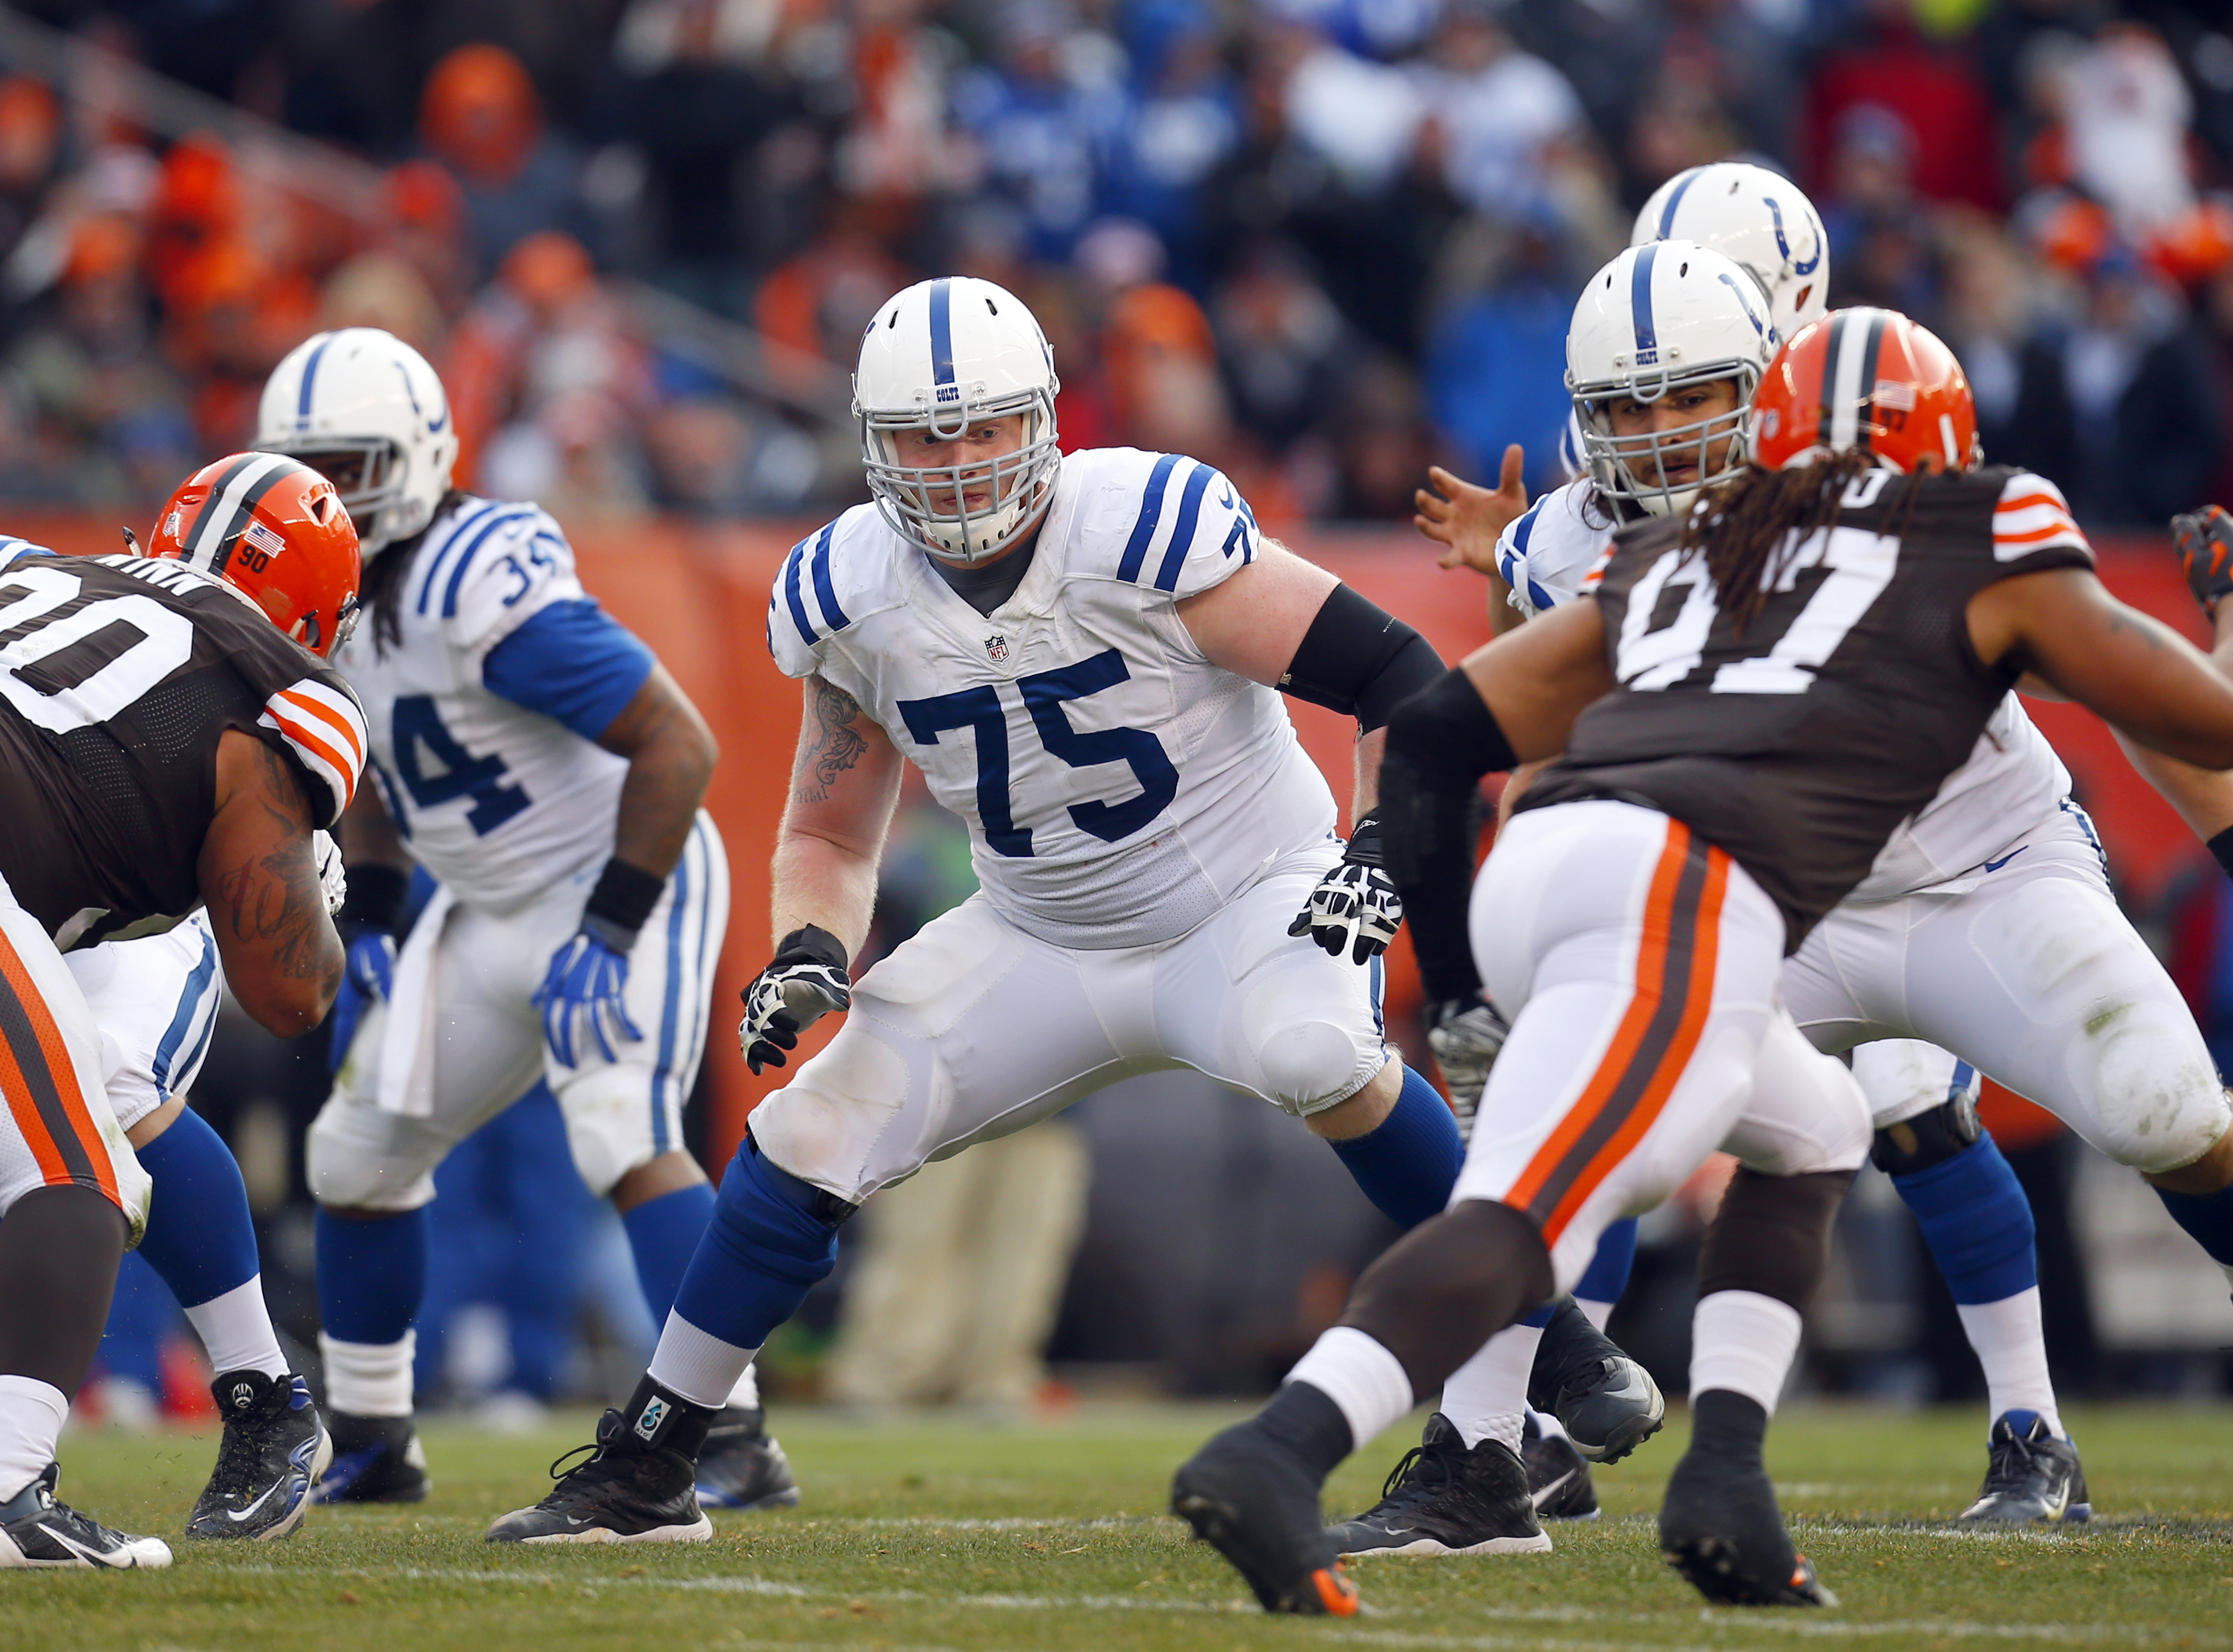 FILE - In this Dec. 7, 2014, file photo, Indianapolis Colts guard Jack Mewhort (75) sets to block against the Cleveland Browns during an NFL football game, in Cleveland. Coach Chuck Pagano did not speak with reporters Monday, Nov. 14, 2016, but what happe